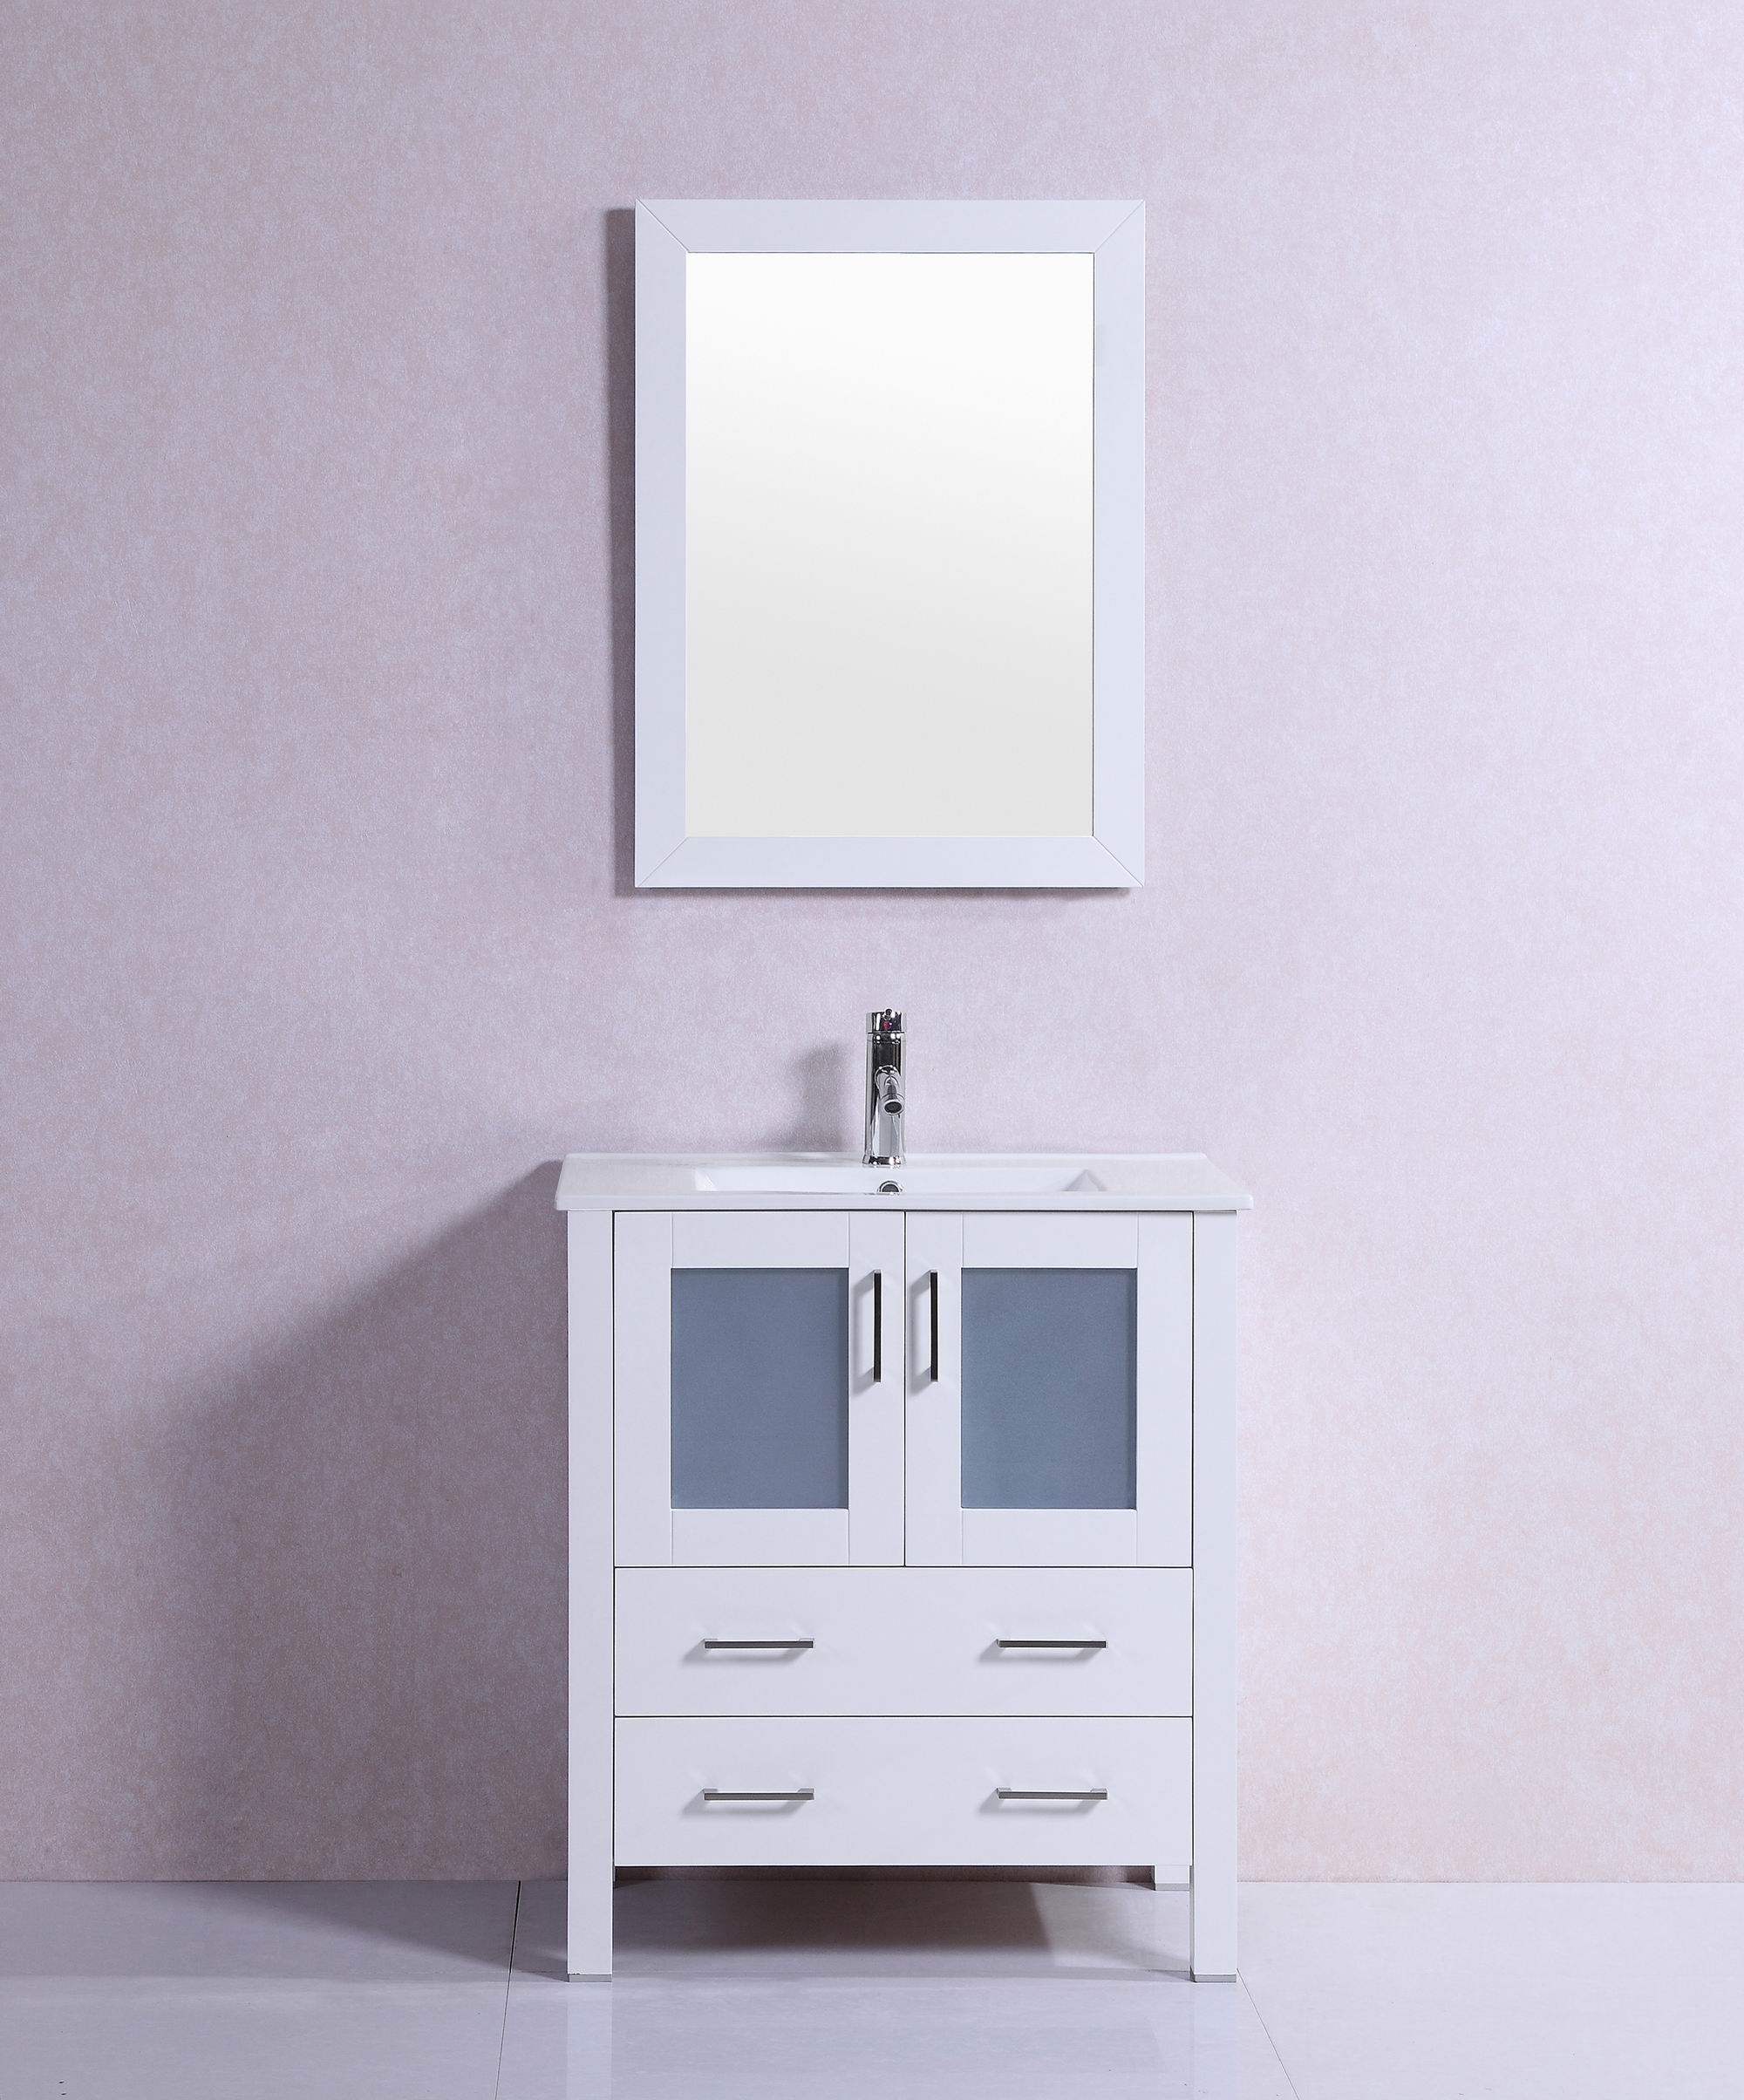 Shop 30 inch belvedere modern freestanding white bathroom vanity with ceramic top free for Freestanding 24 inch bathroom vanity